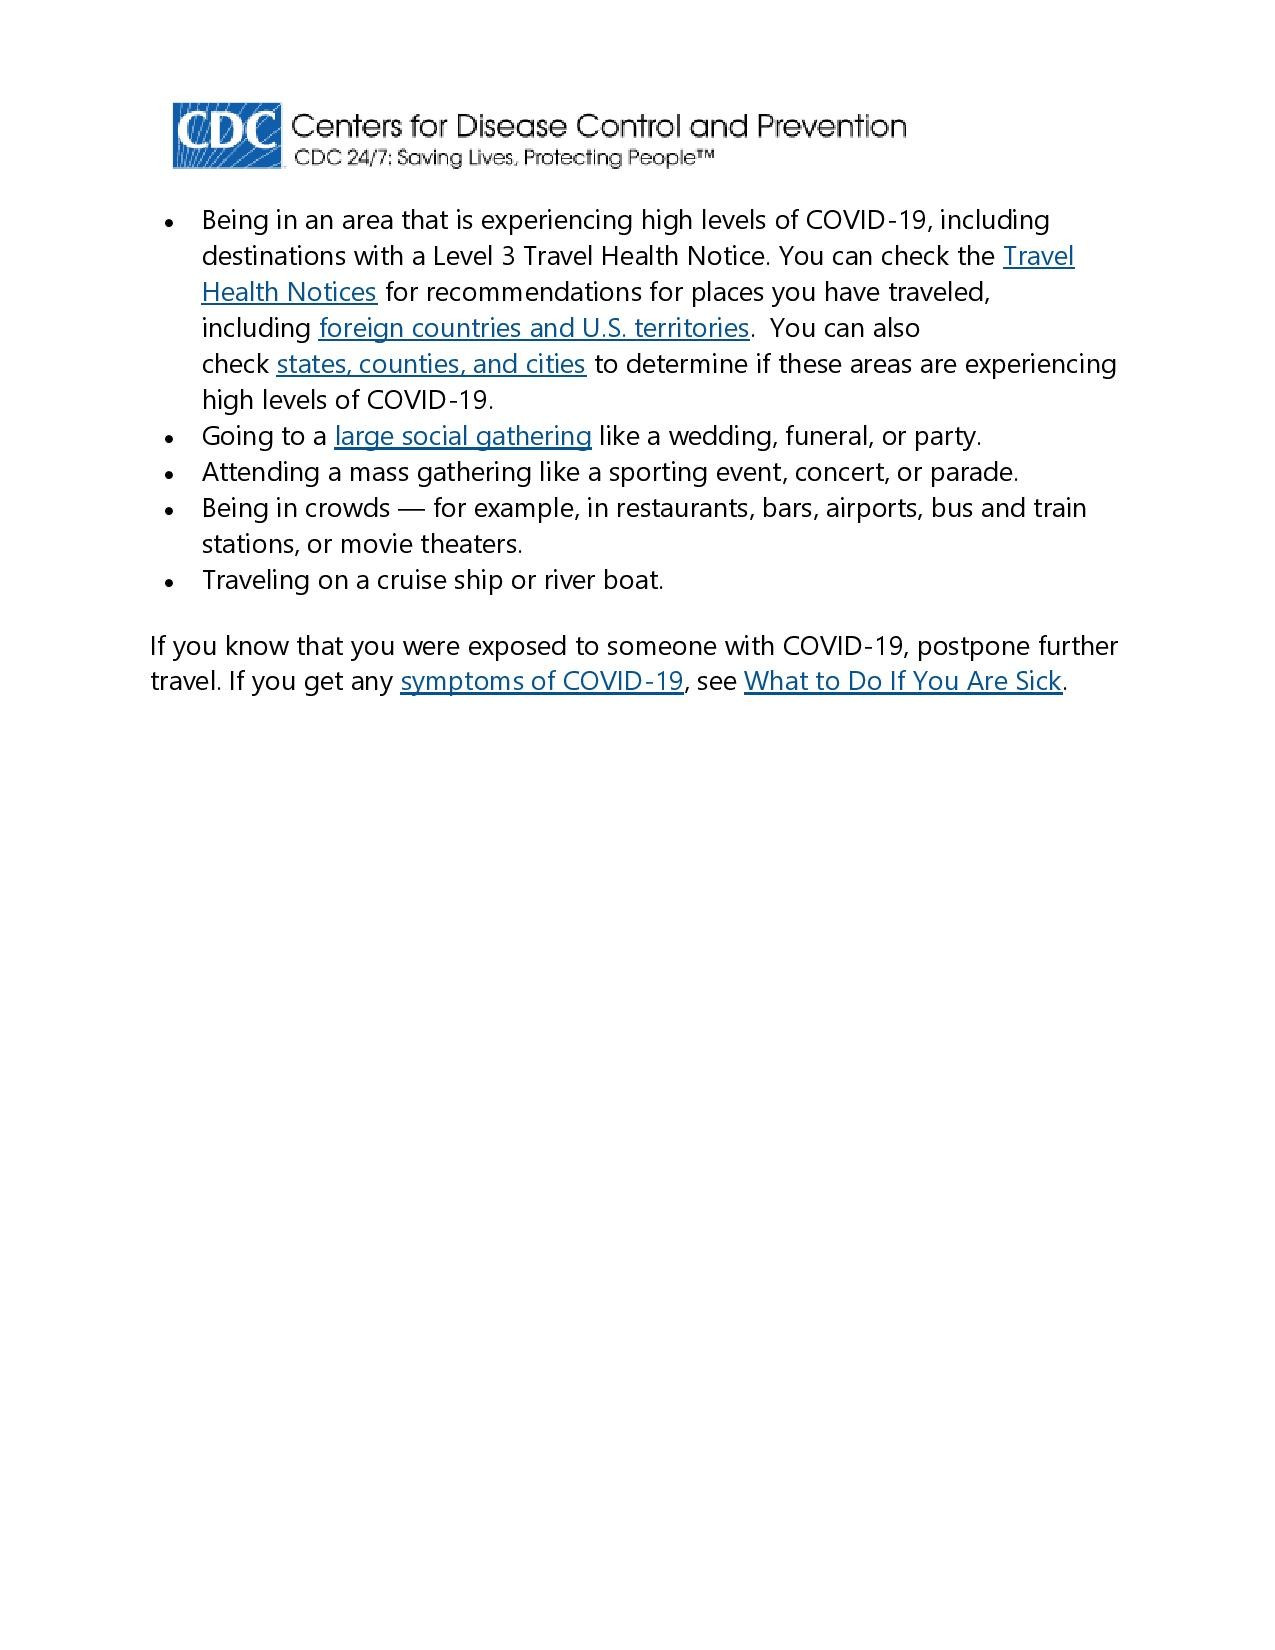 Travel during the COVID.docx-page-007